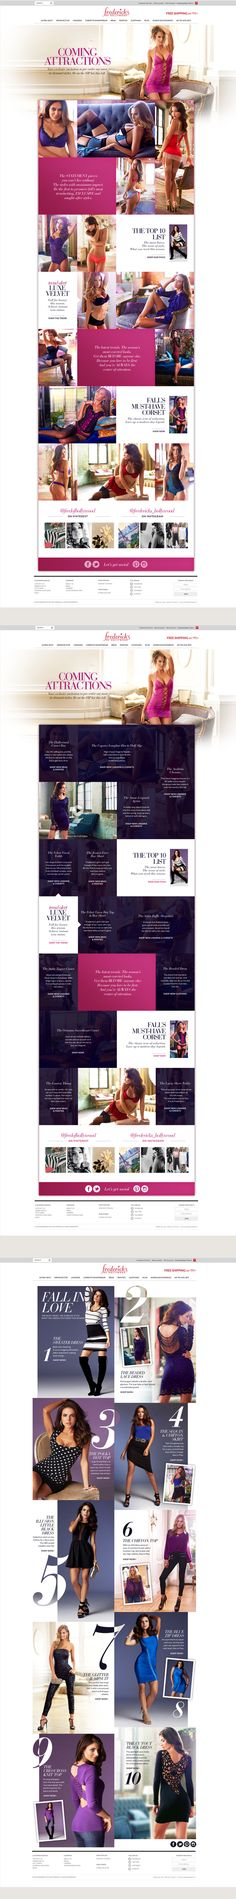 Fashion Landing Pages - Frederick's of Hollywood on Behance